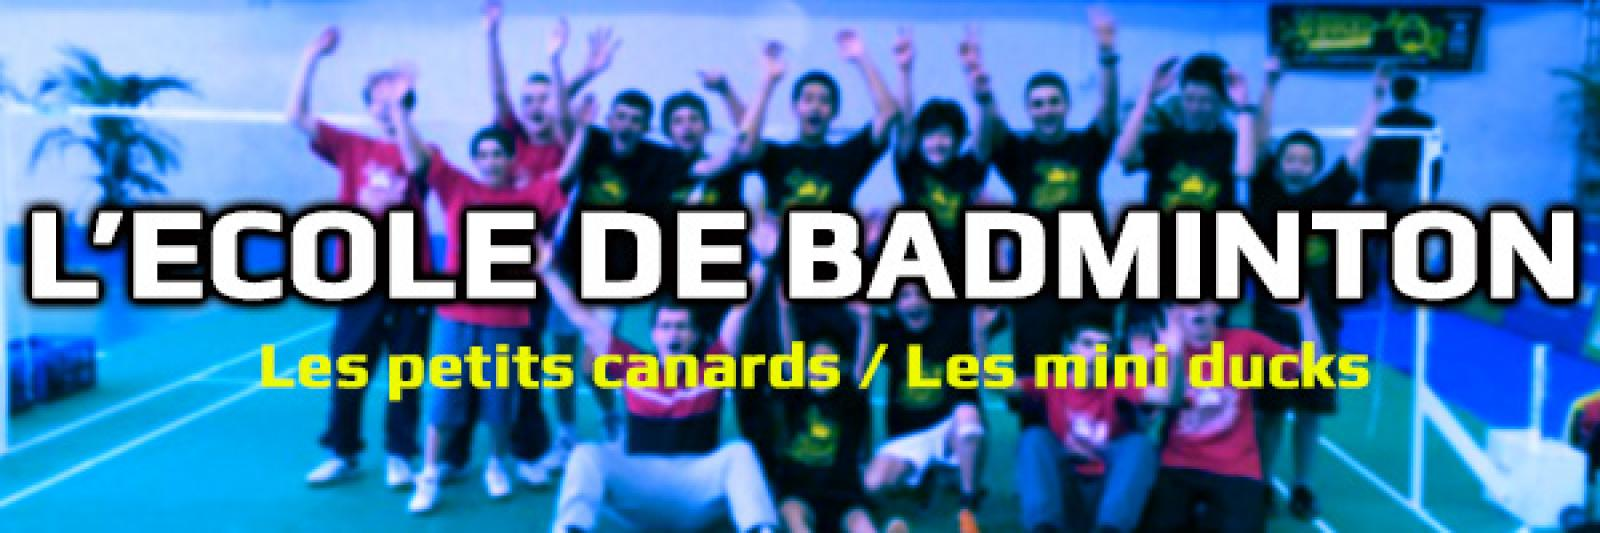 Inscriptions Ecole de Badminton